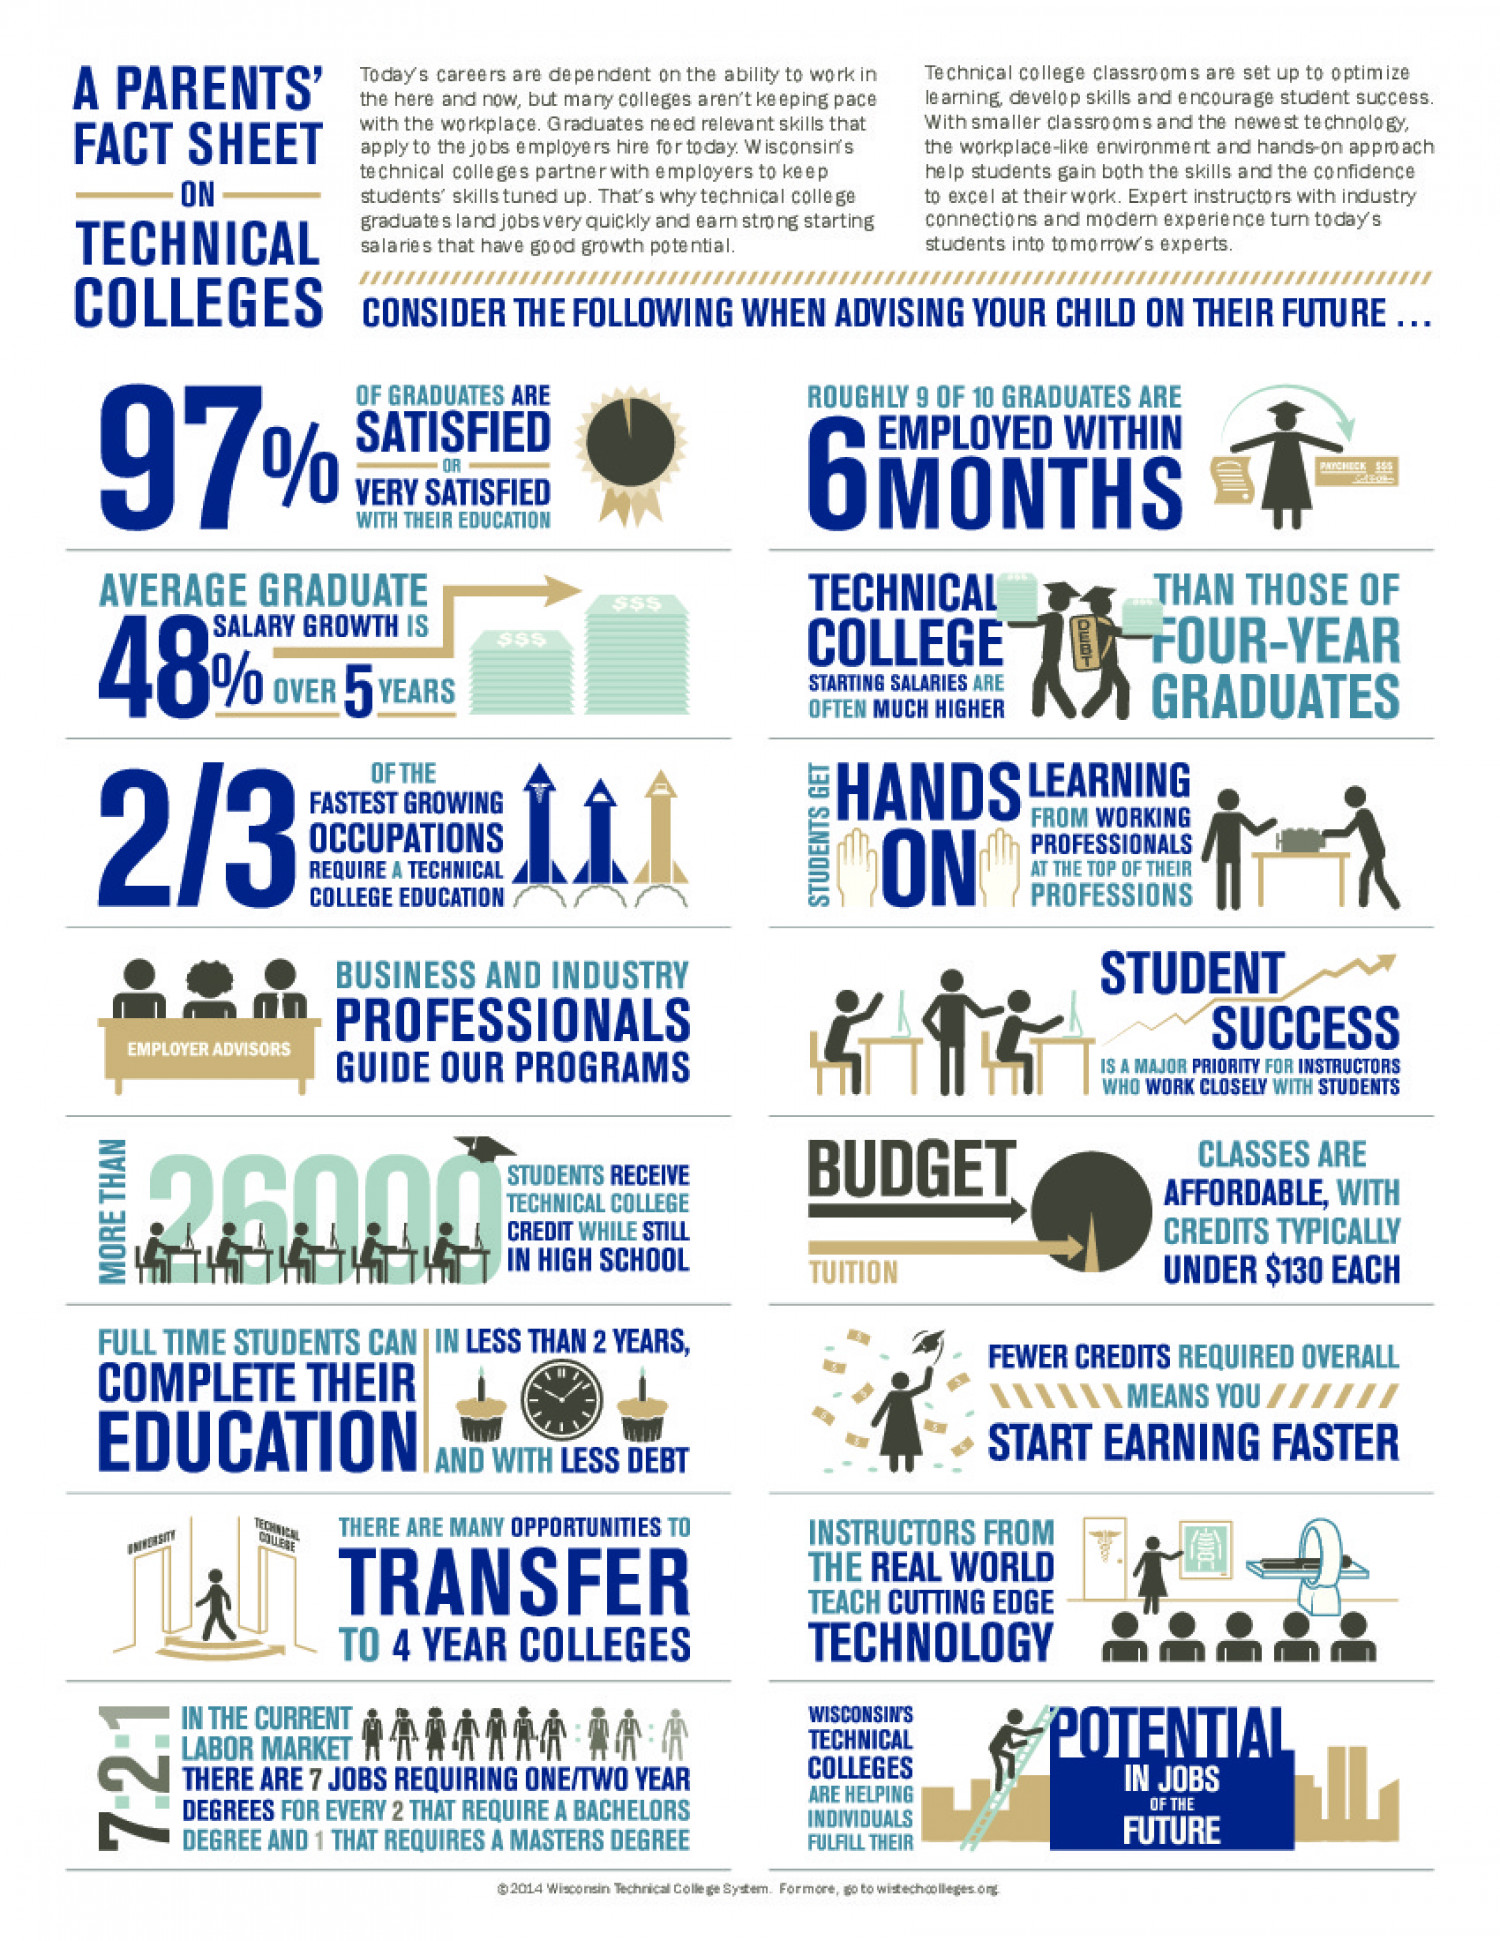 A Parents Fact Sheet On Technical Colleges